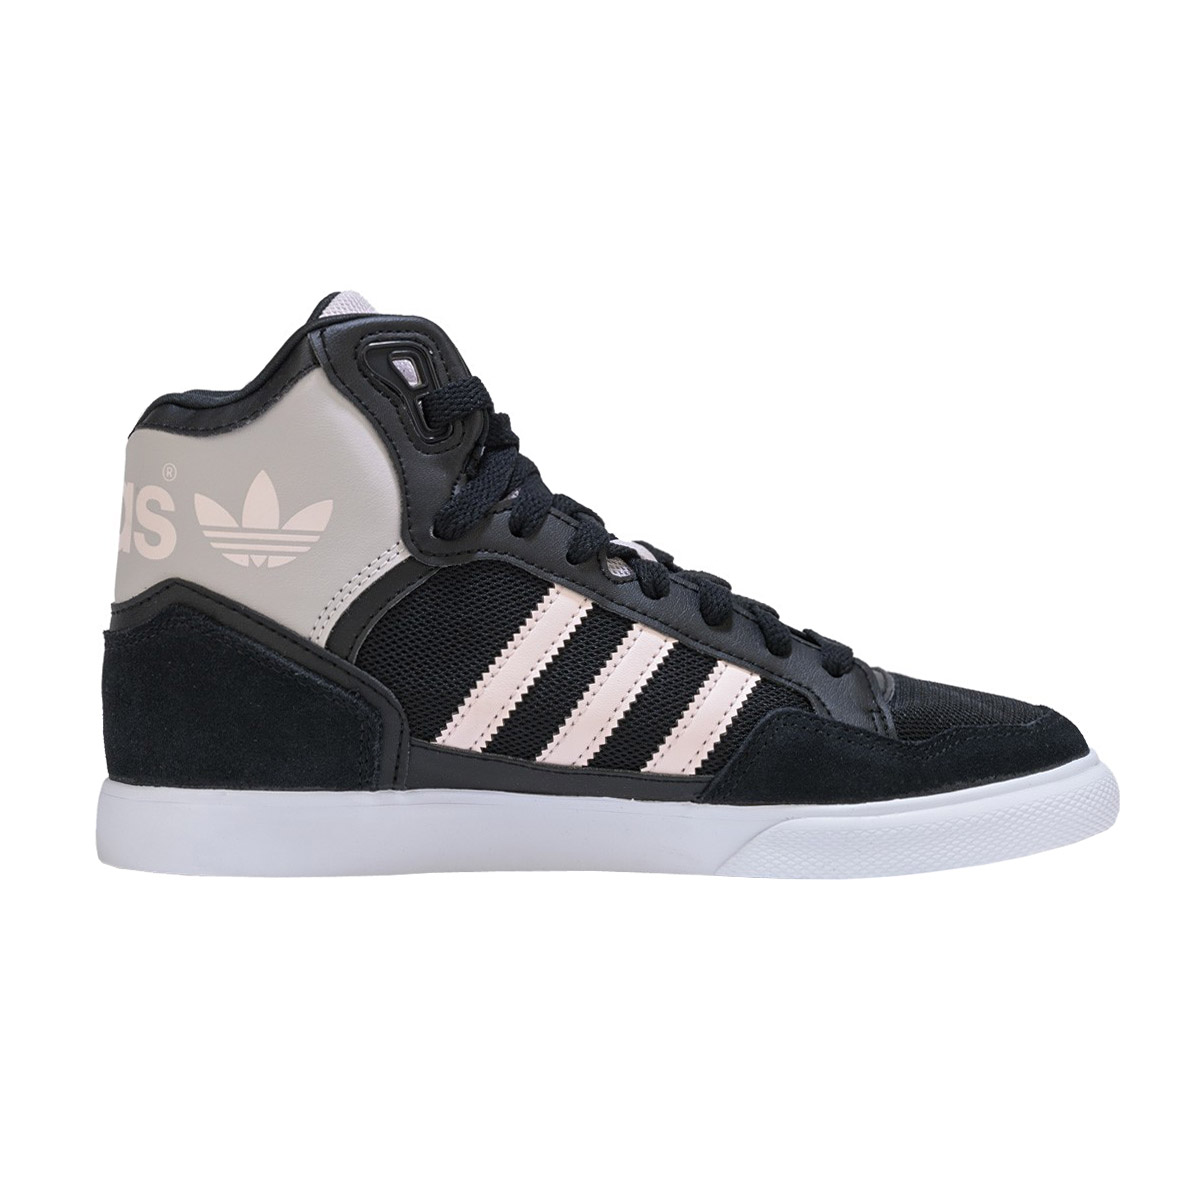 adidas damen sneaker extaball w schwarz high schuhe. Black Bedroom Furniture Sets. Home Design Ideas